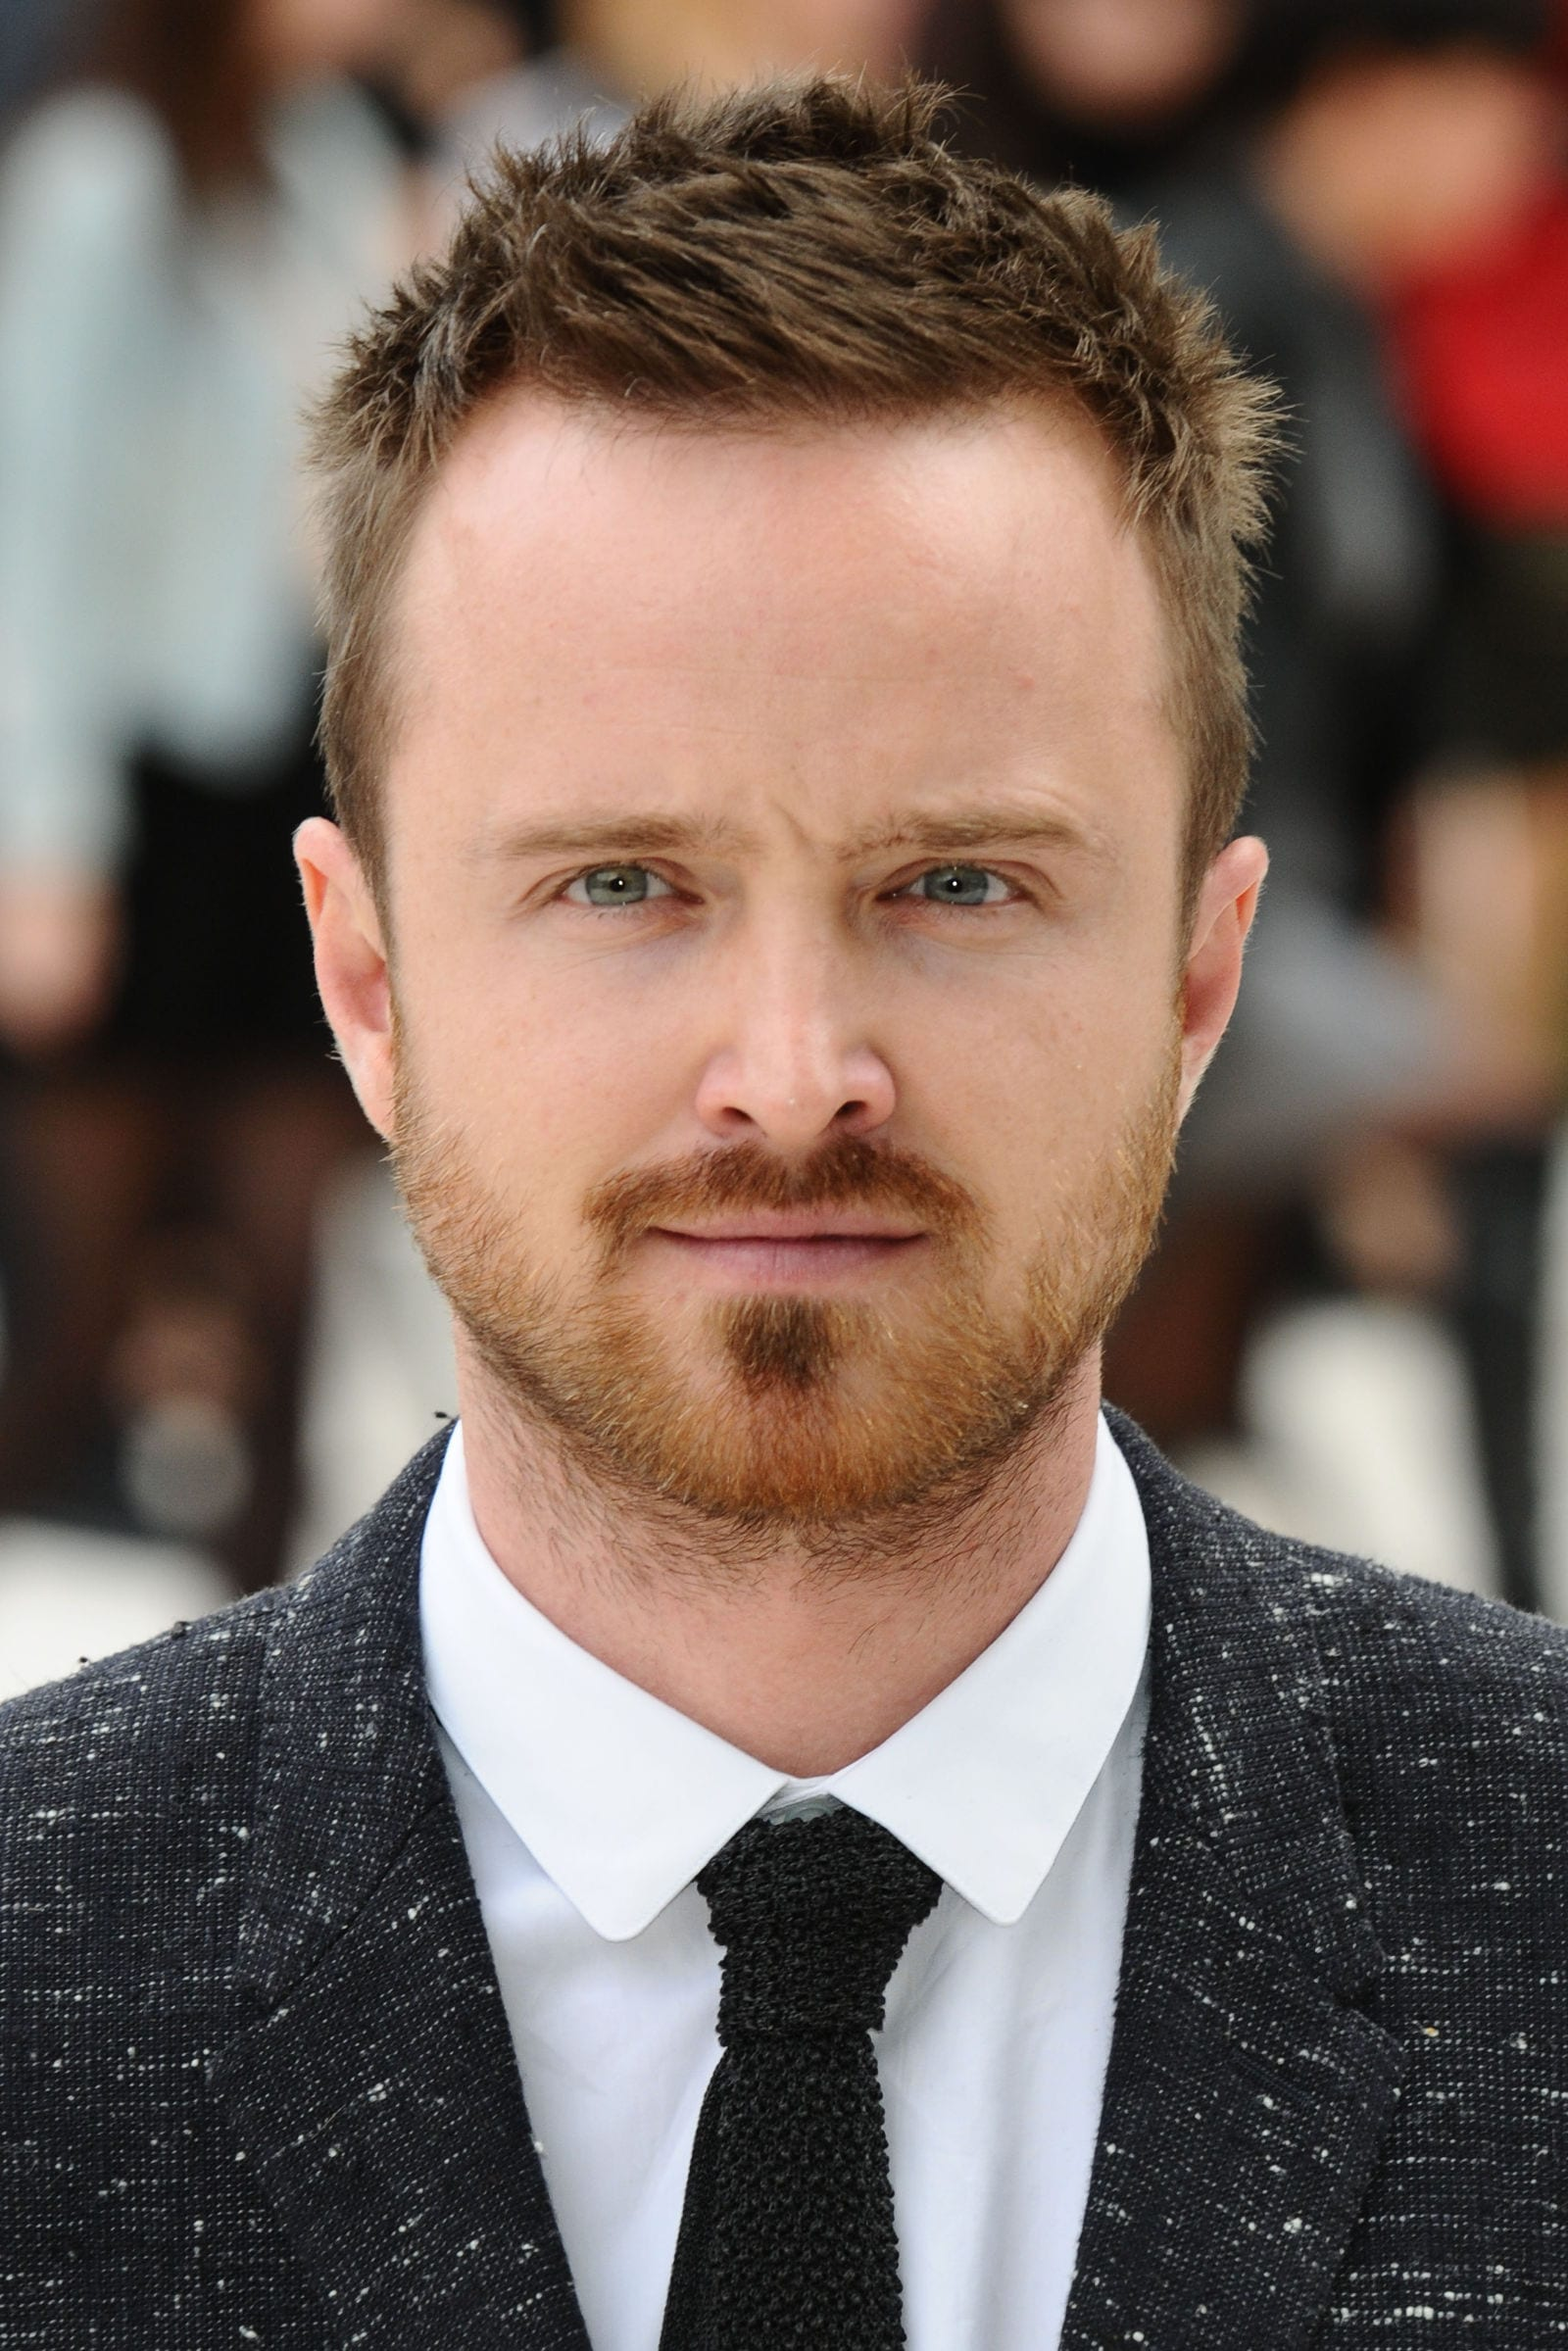 Aaron Paul textured hairstyle by Featureflash Photo Agency